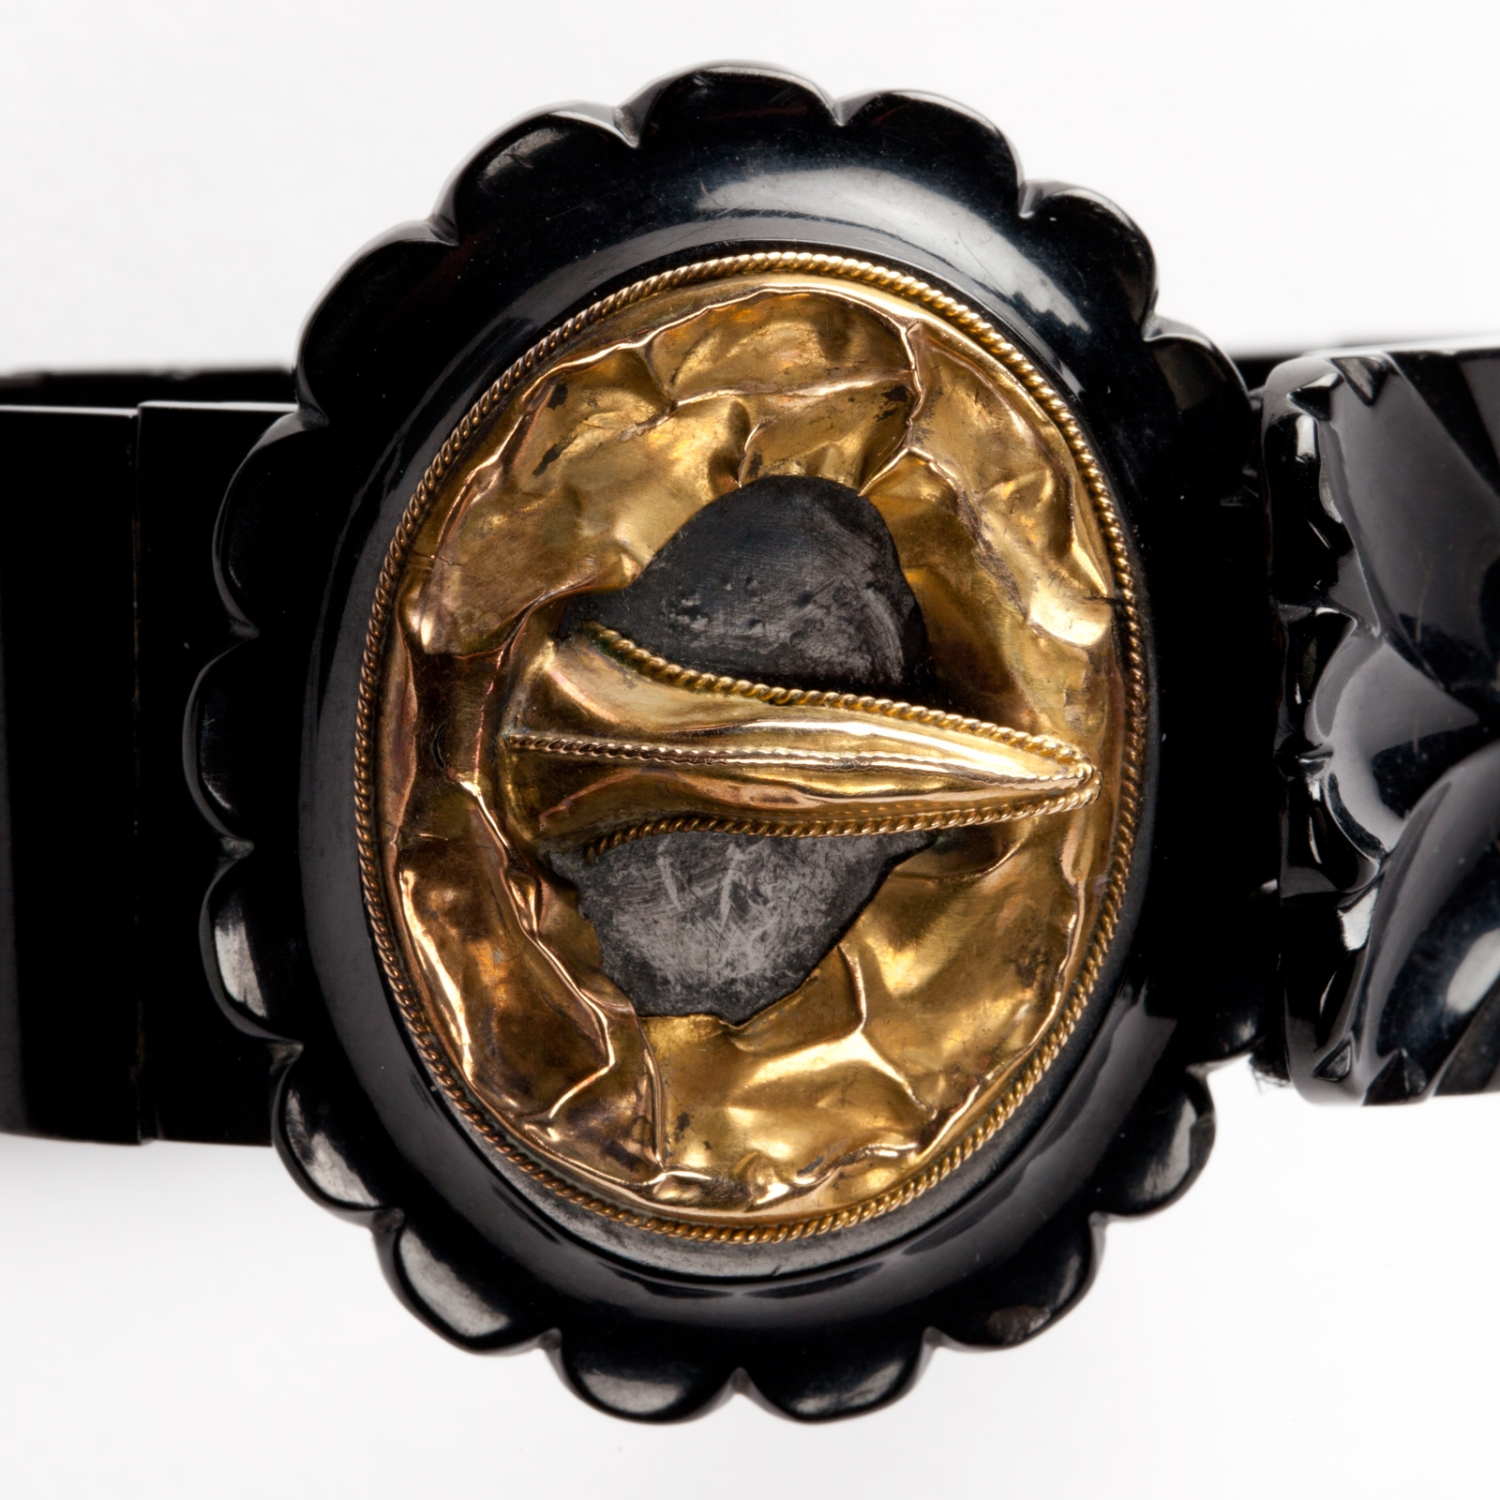 One of a pair of Whitby jet strap and buckle style bracelets, possibly incomplete. Made in England, 1860s.